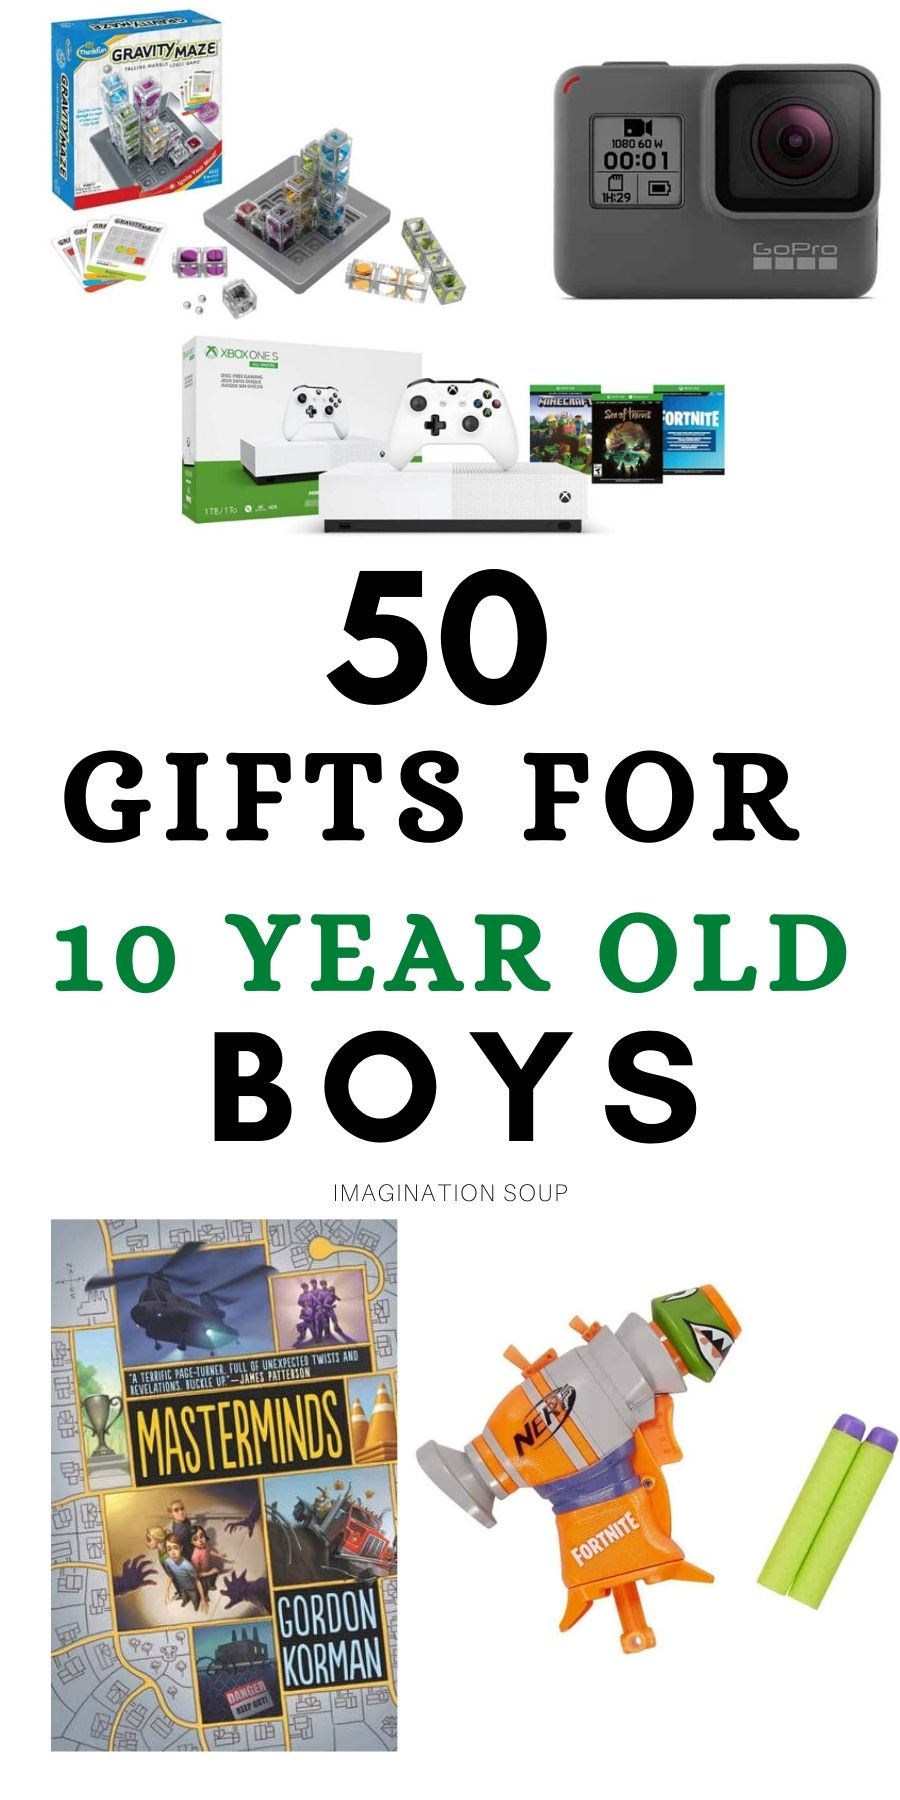 Gifts For 10 Year Old Boys In 2020 10 Year Old Gifts Christmas Gift 12 Year Old Boy 10 Year Old Christmas Gifts